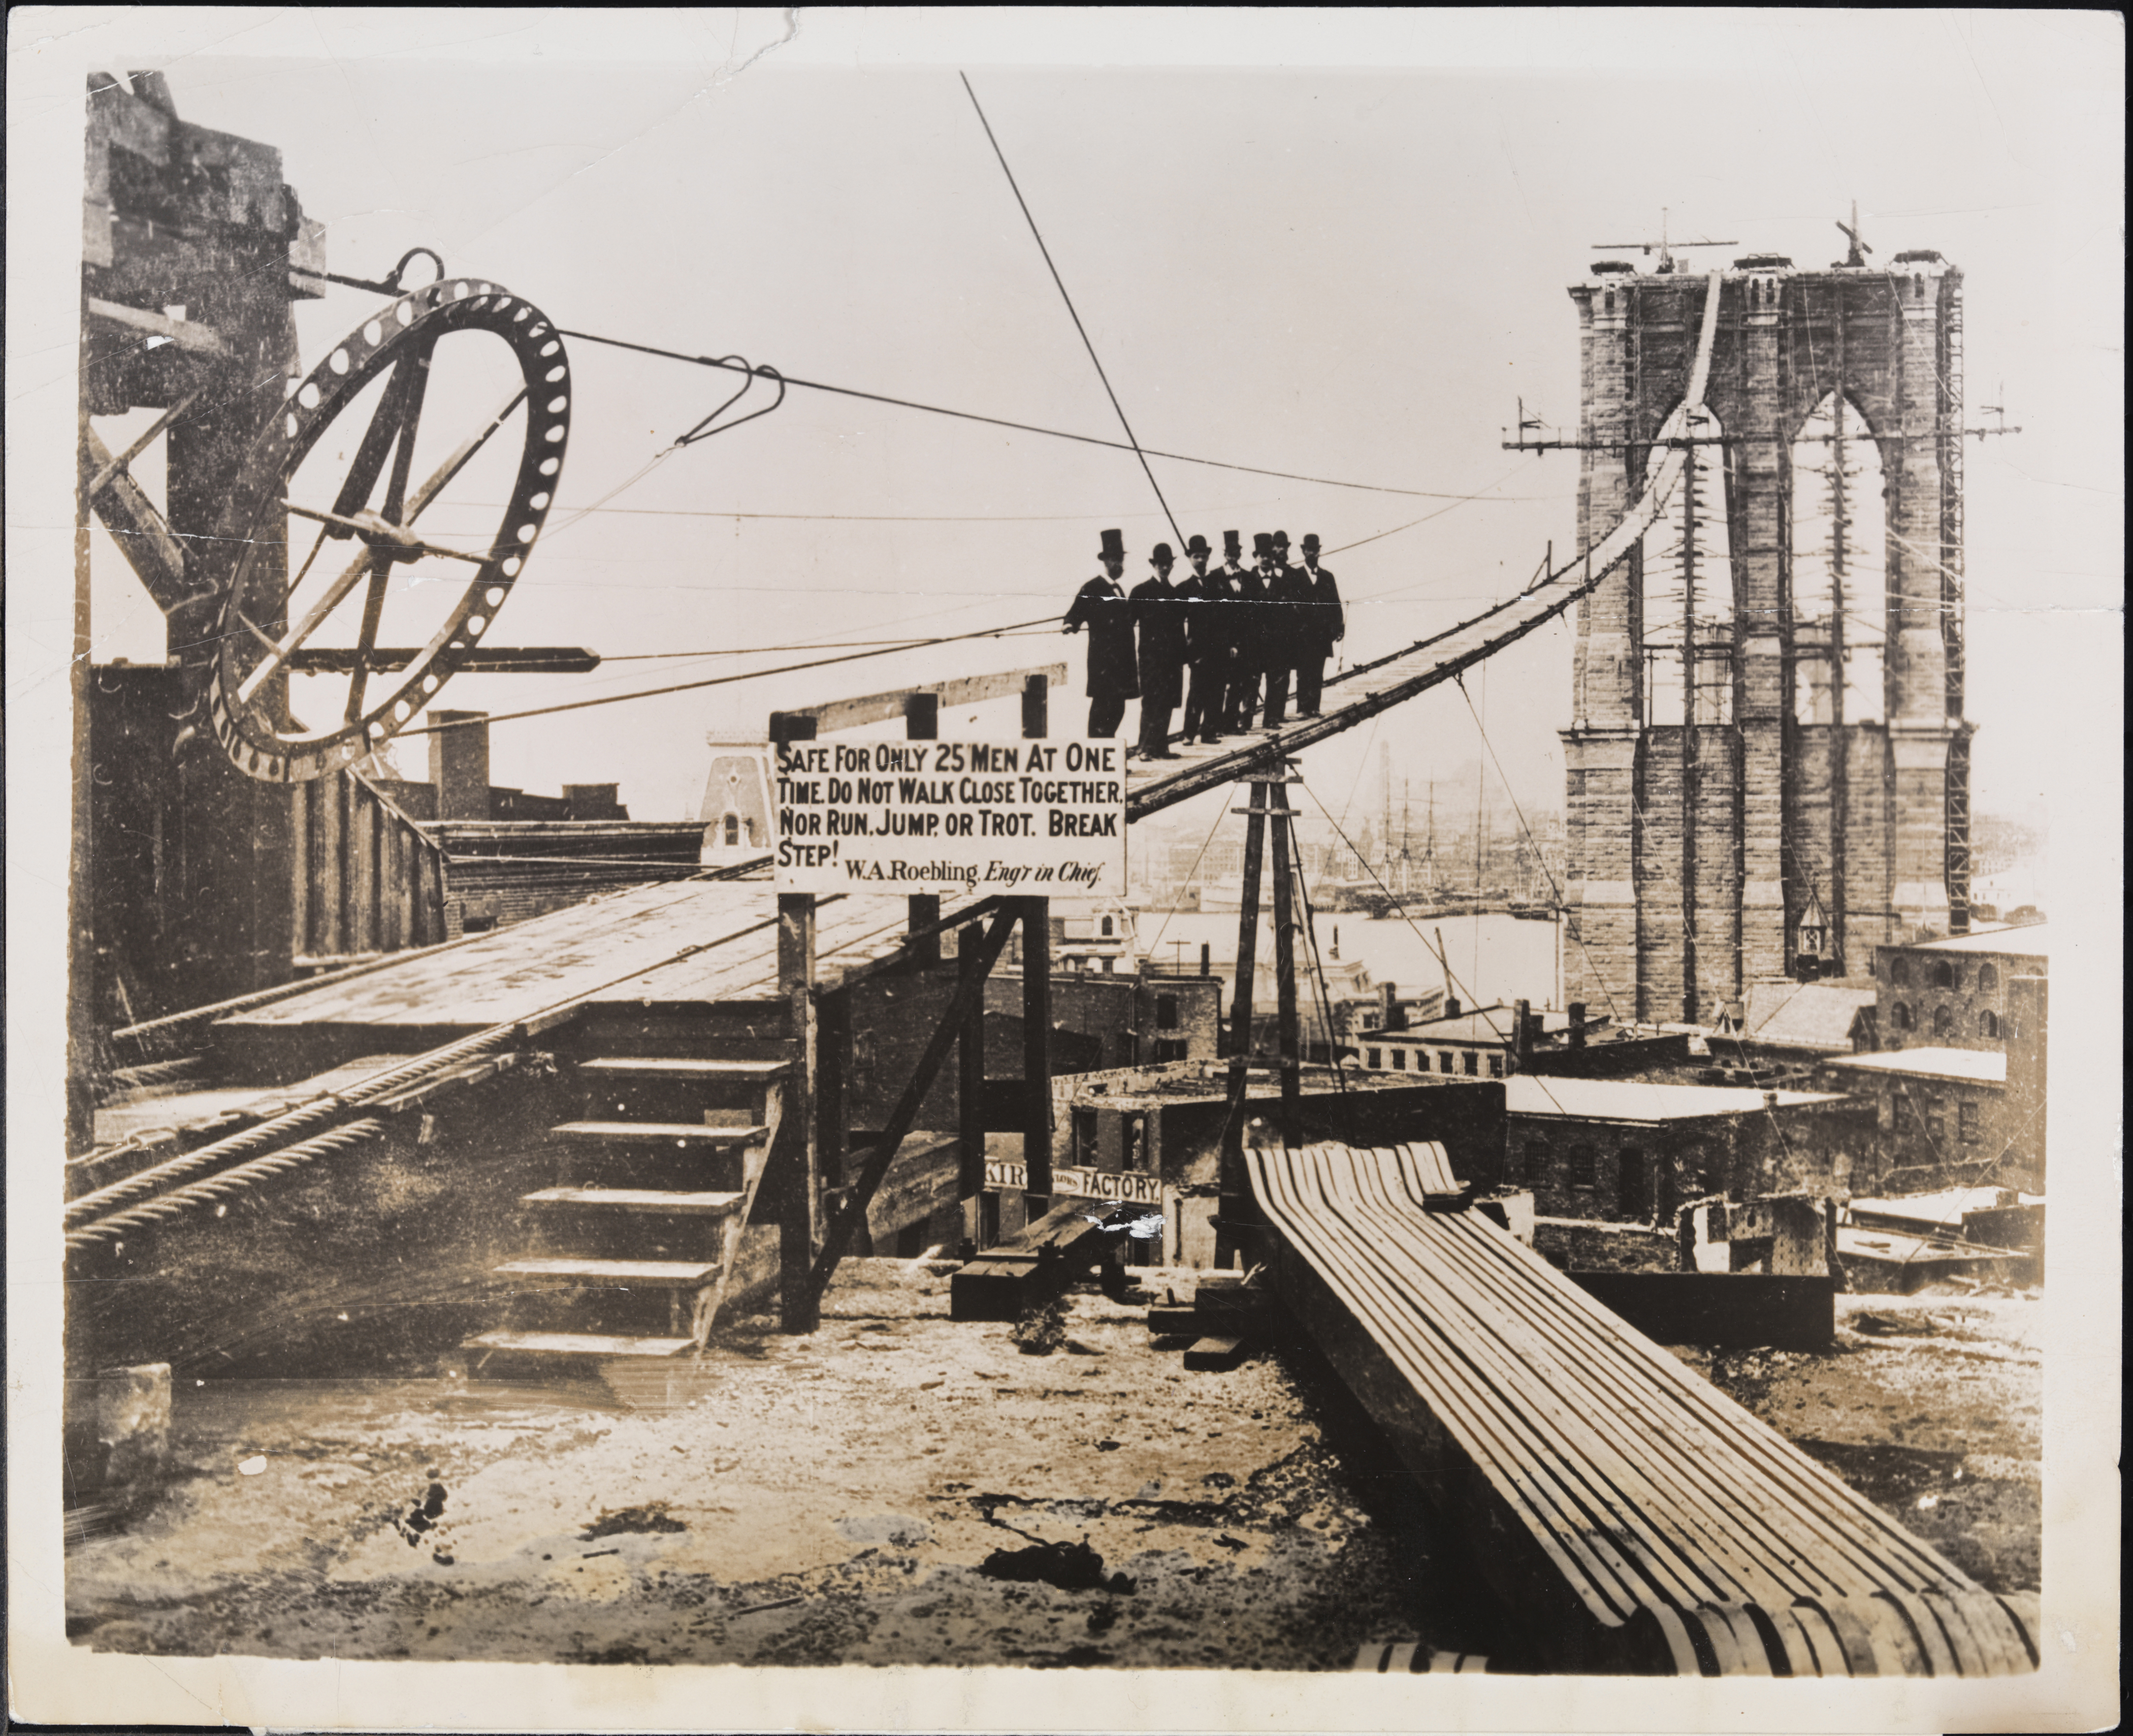 Brooklyn Bridge Under Construction, courtesy of the Museum of the City of New York